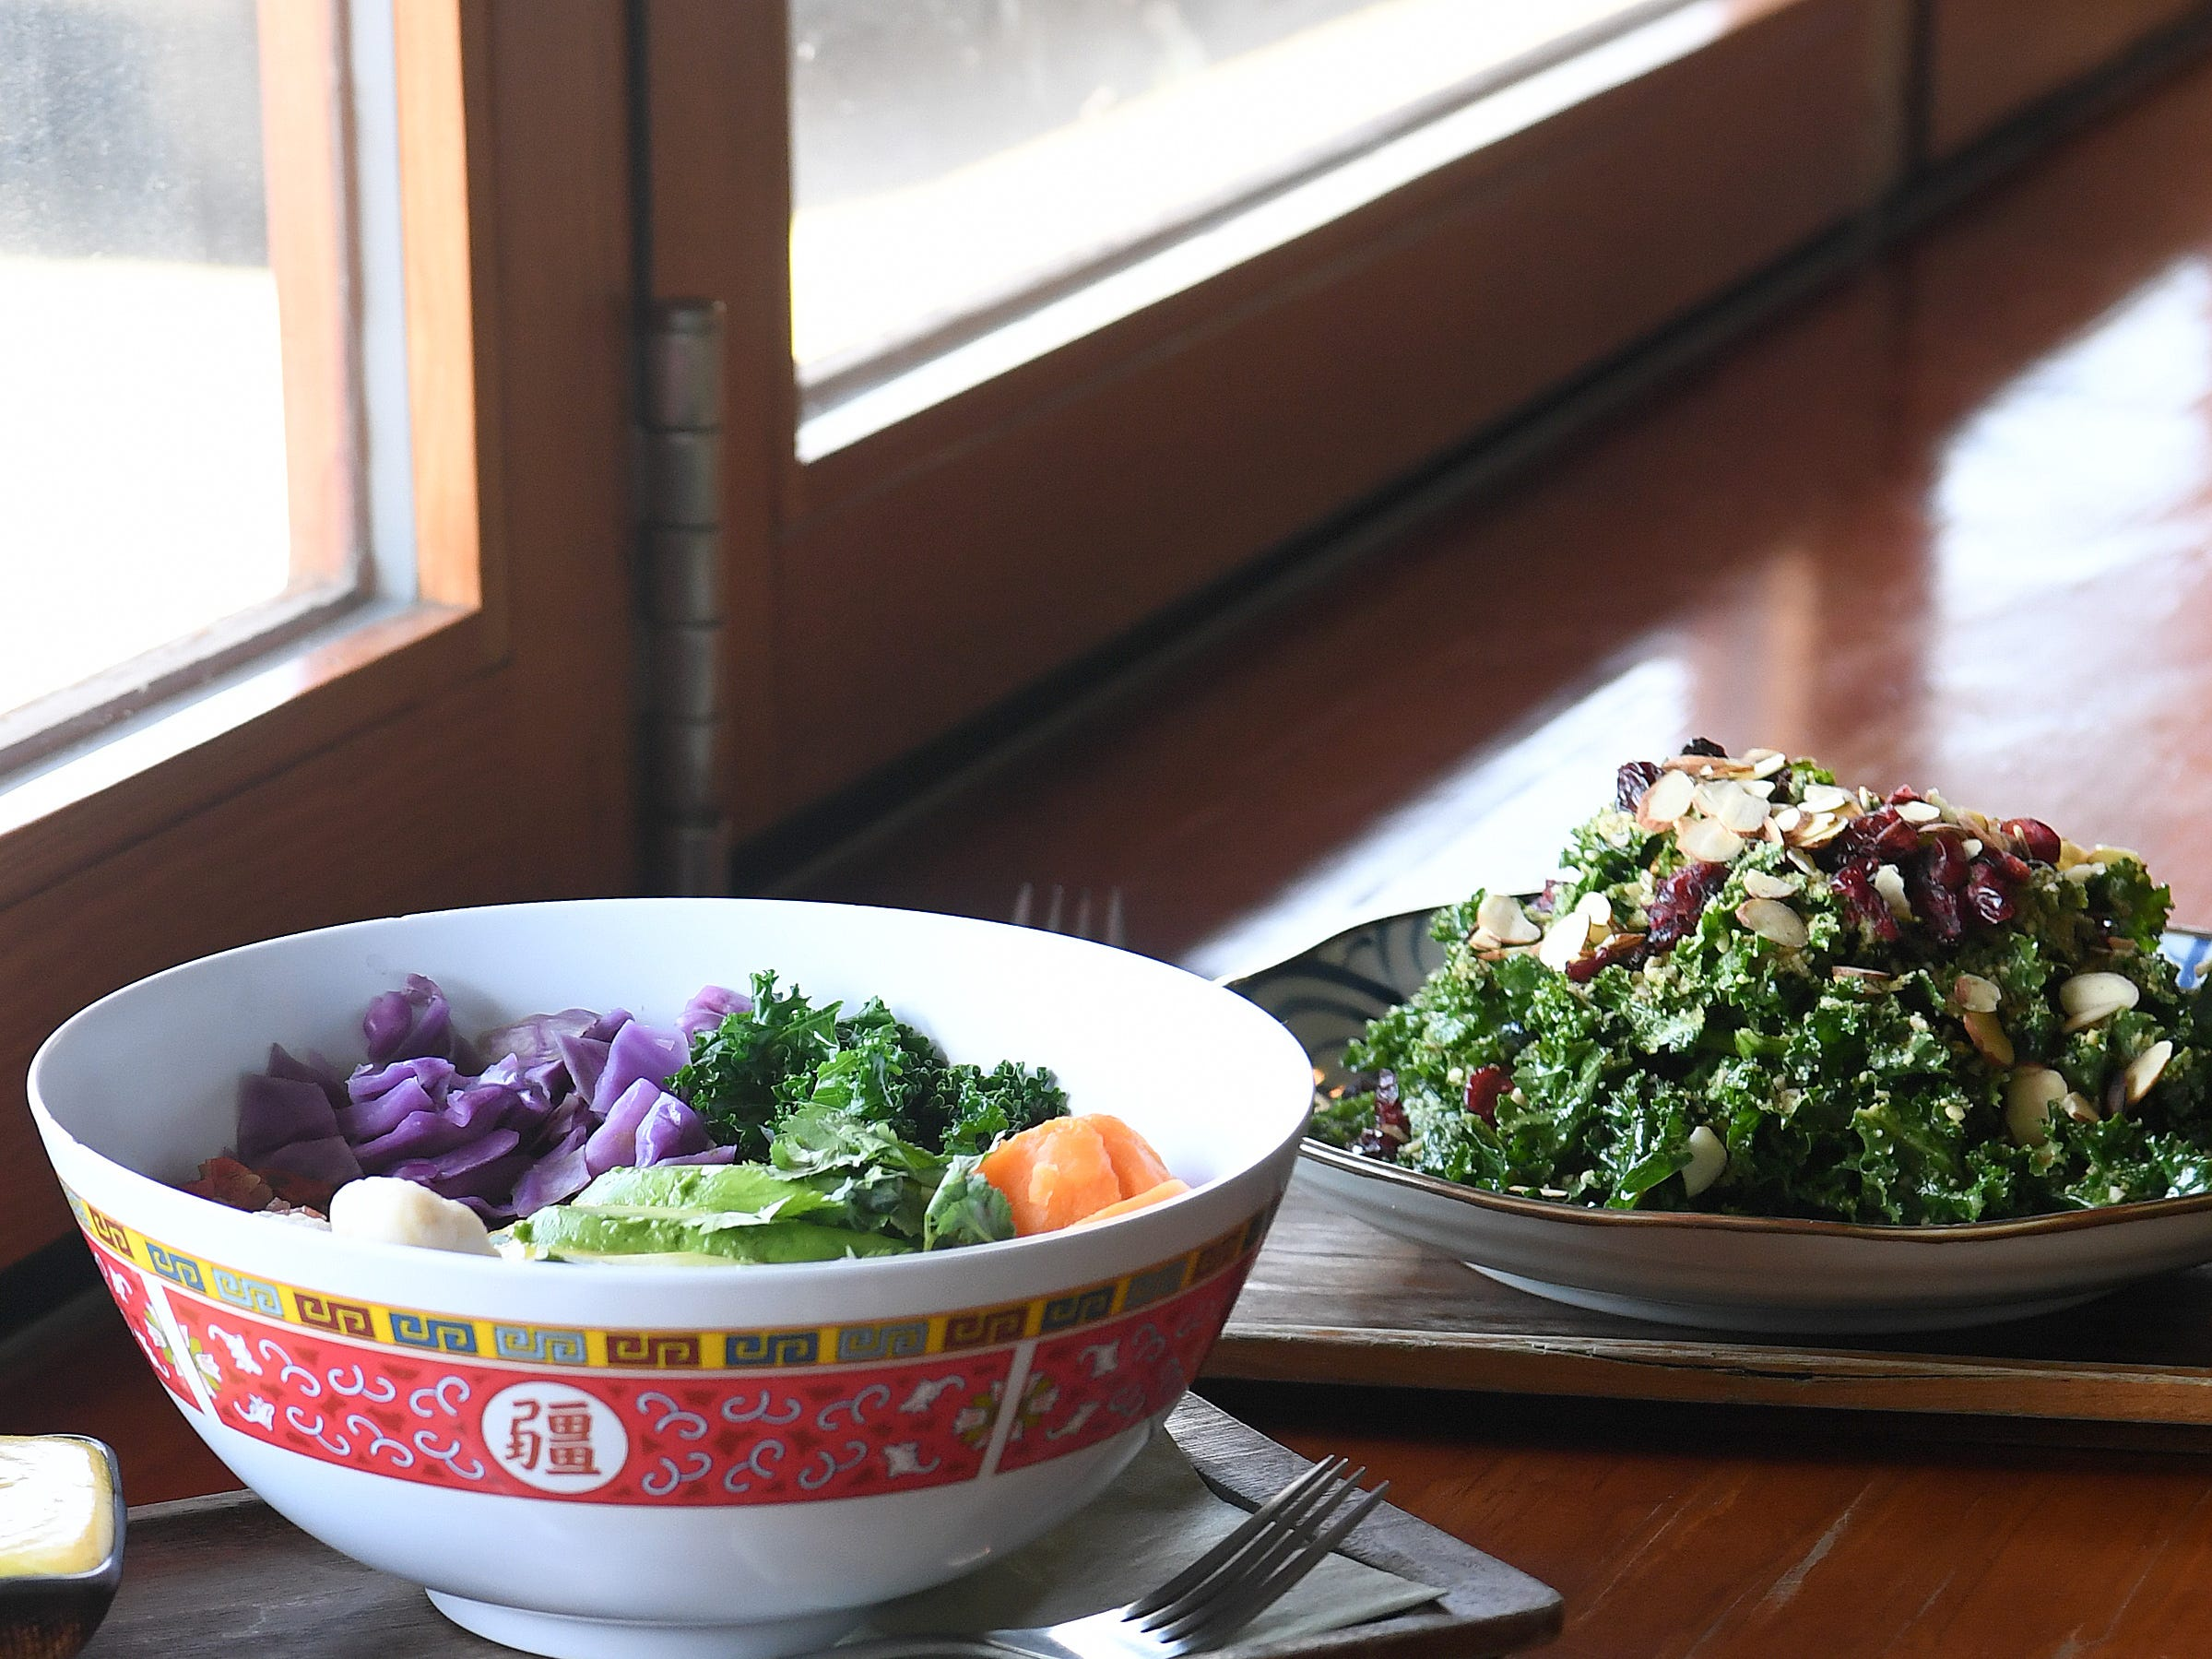 The Yum Bowl, kale caesar salad, almond joyful bar and spring rolls are all food options available at Dobra Tea's West Asheville location.